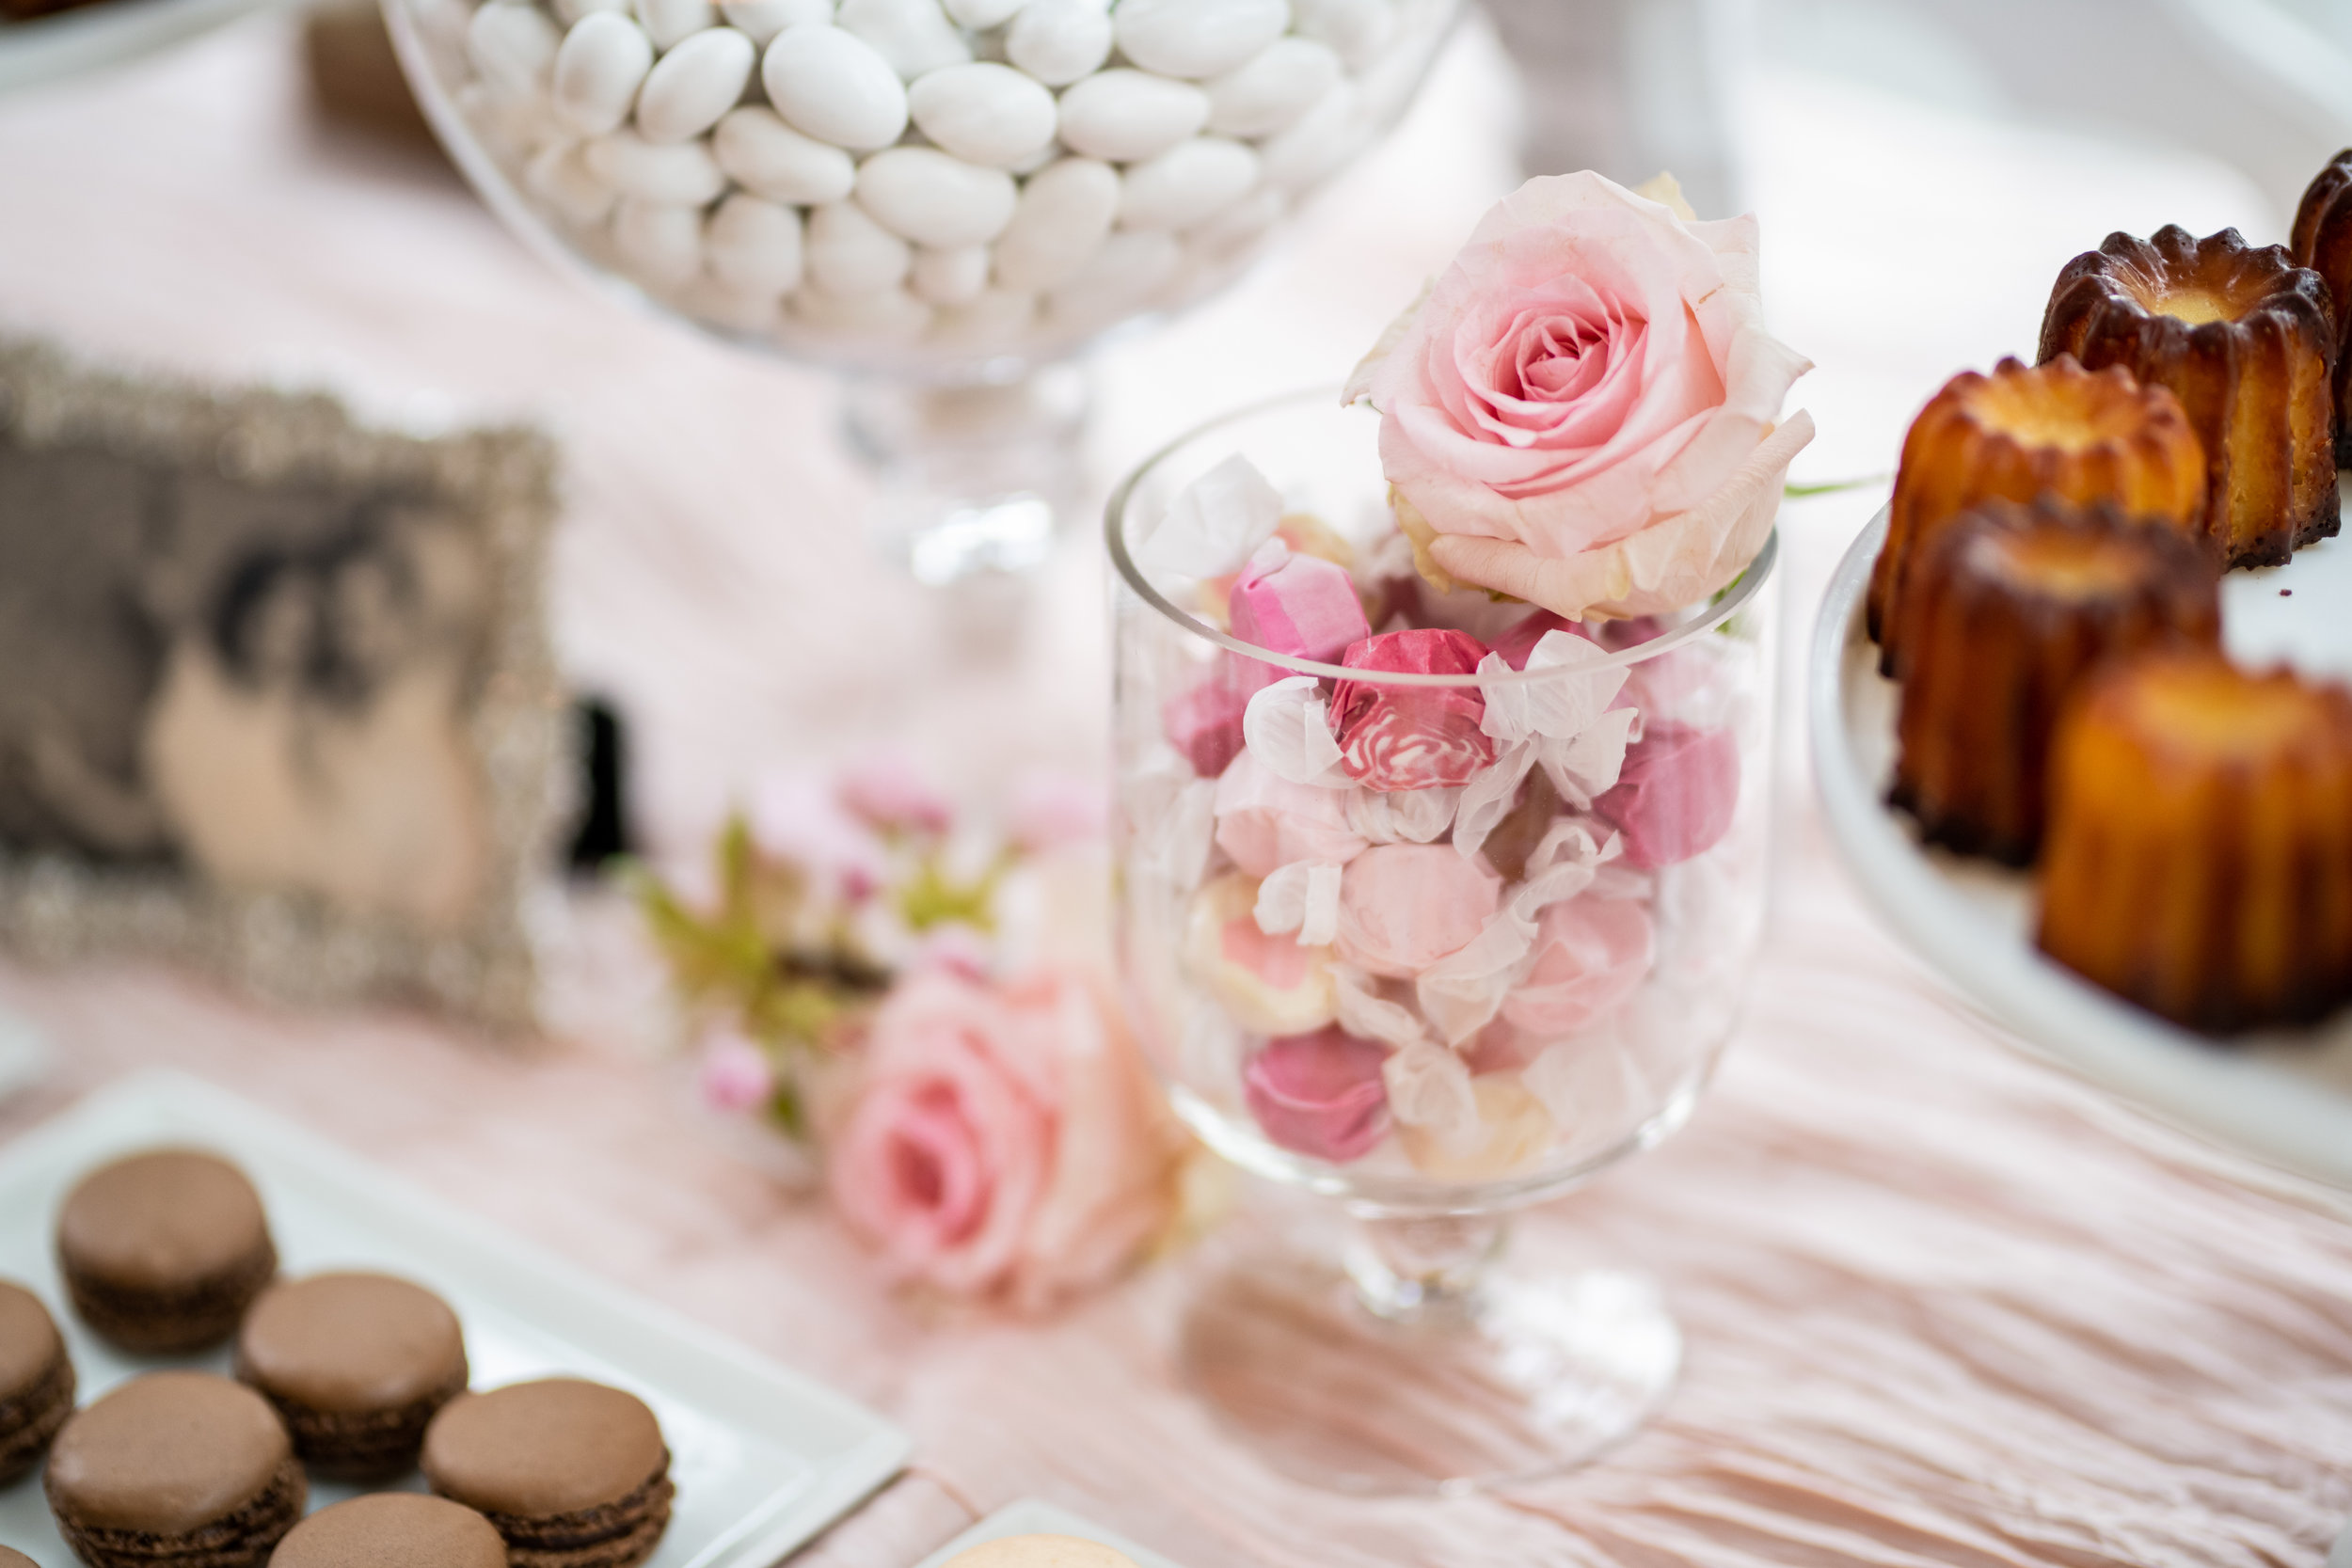 beautiful-and-blessed-events-limani-roslyn-new-york-bridal-shower-theodora-014